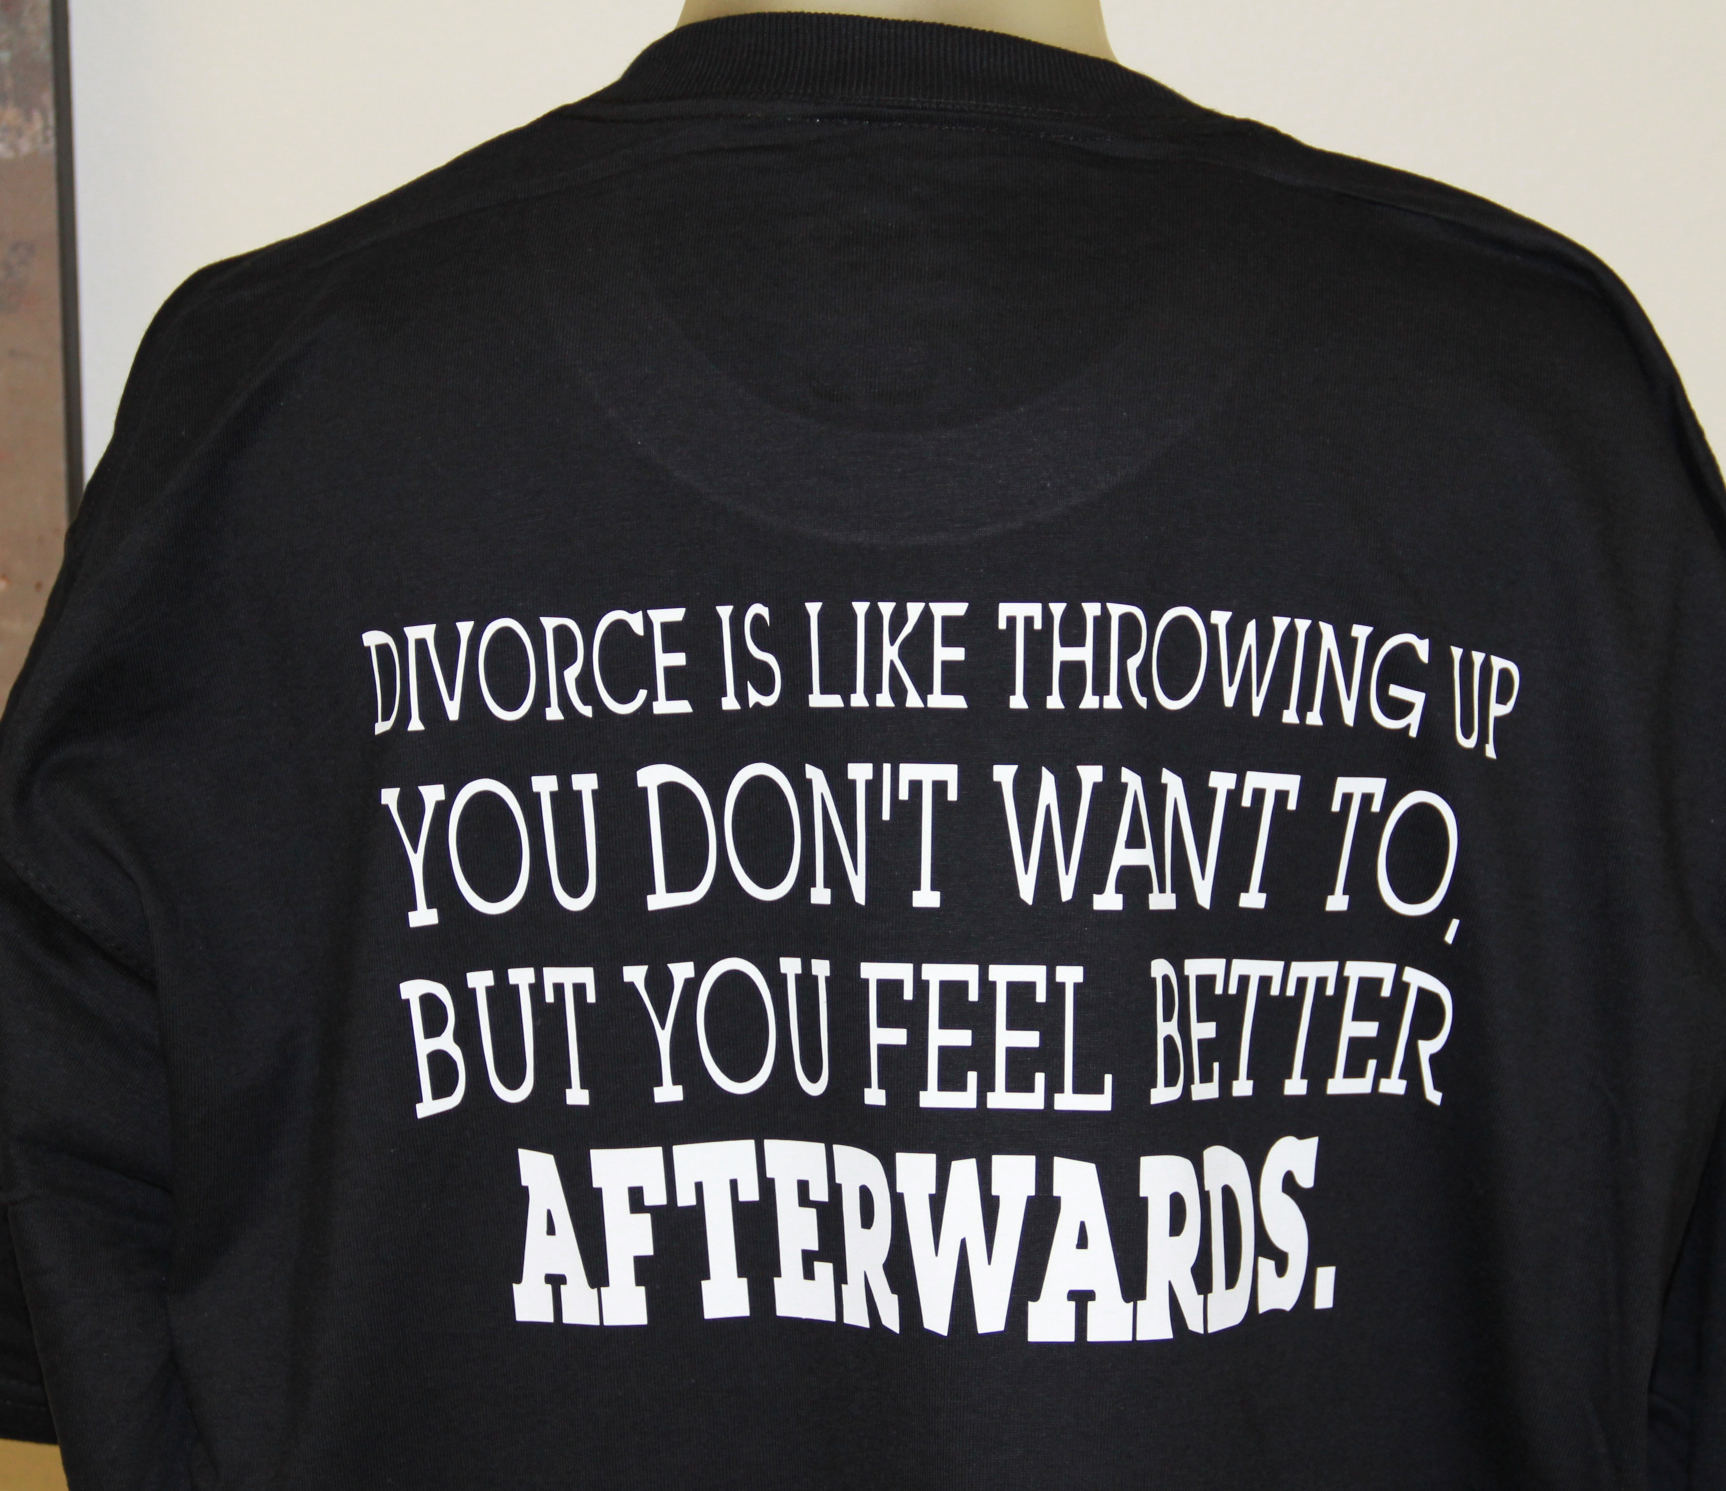 divorce-is-like-throwing-up-you-dont-want-to-but-you-feel-better-afterwards-shirts.jpg